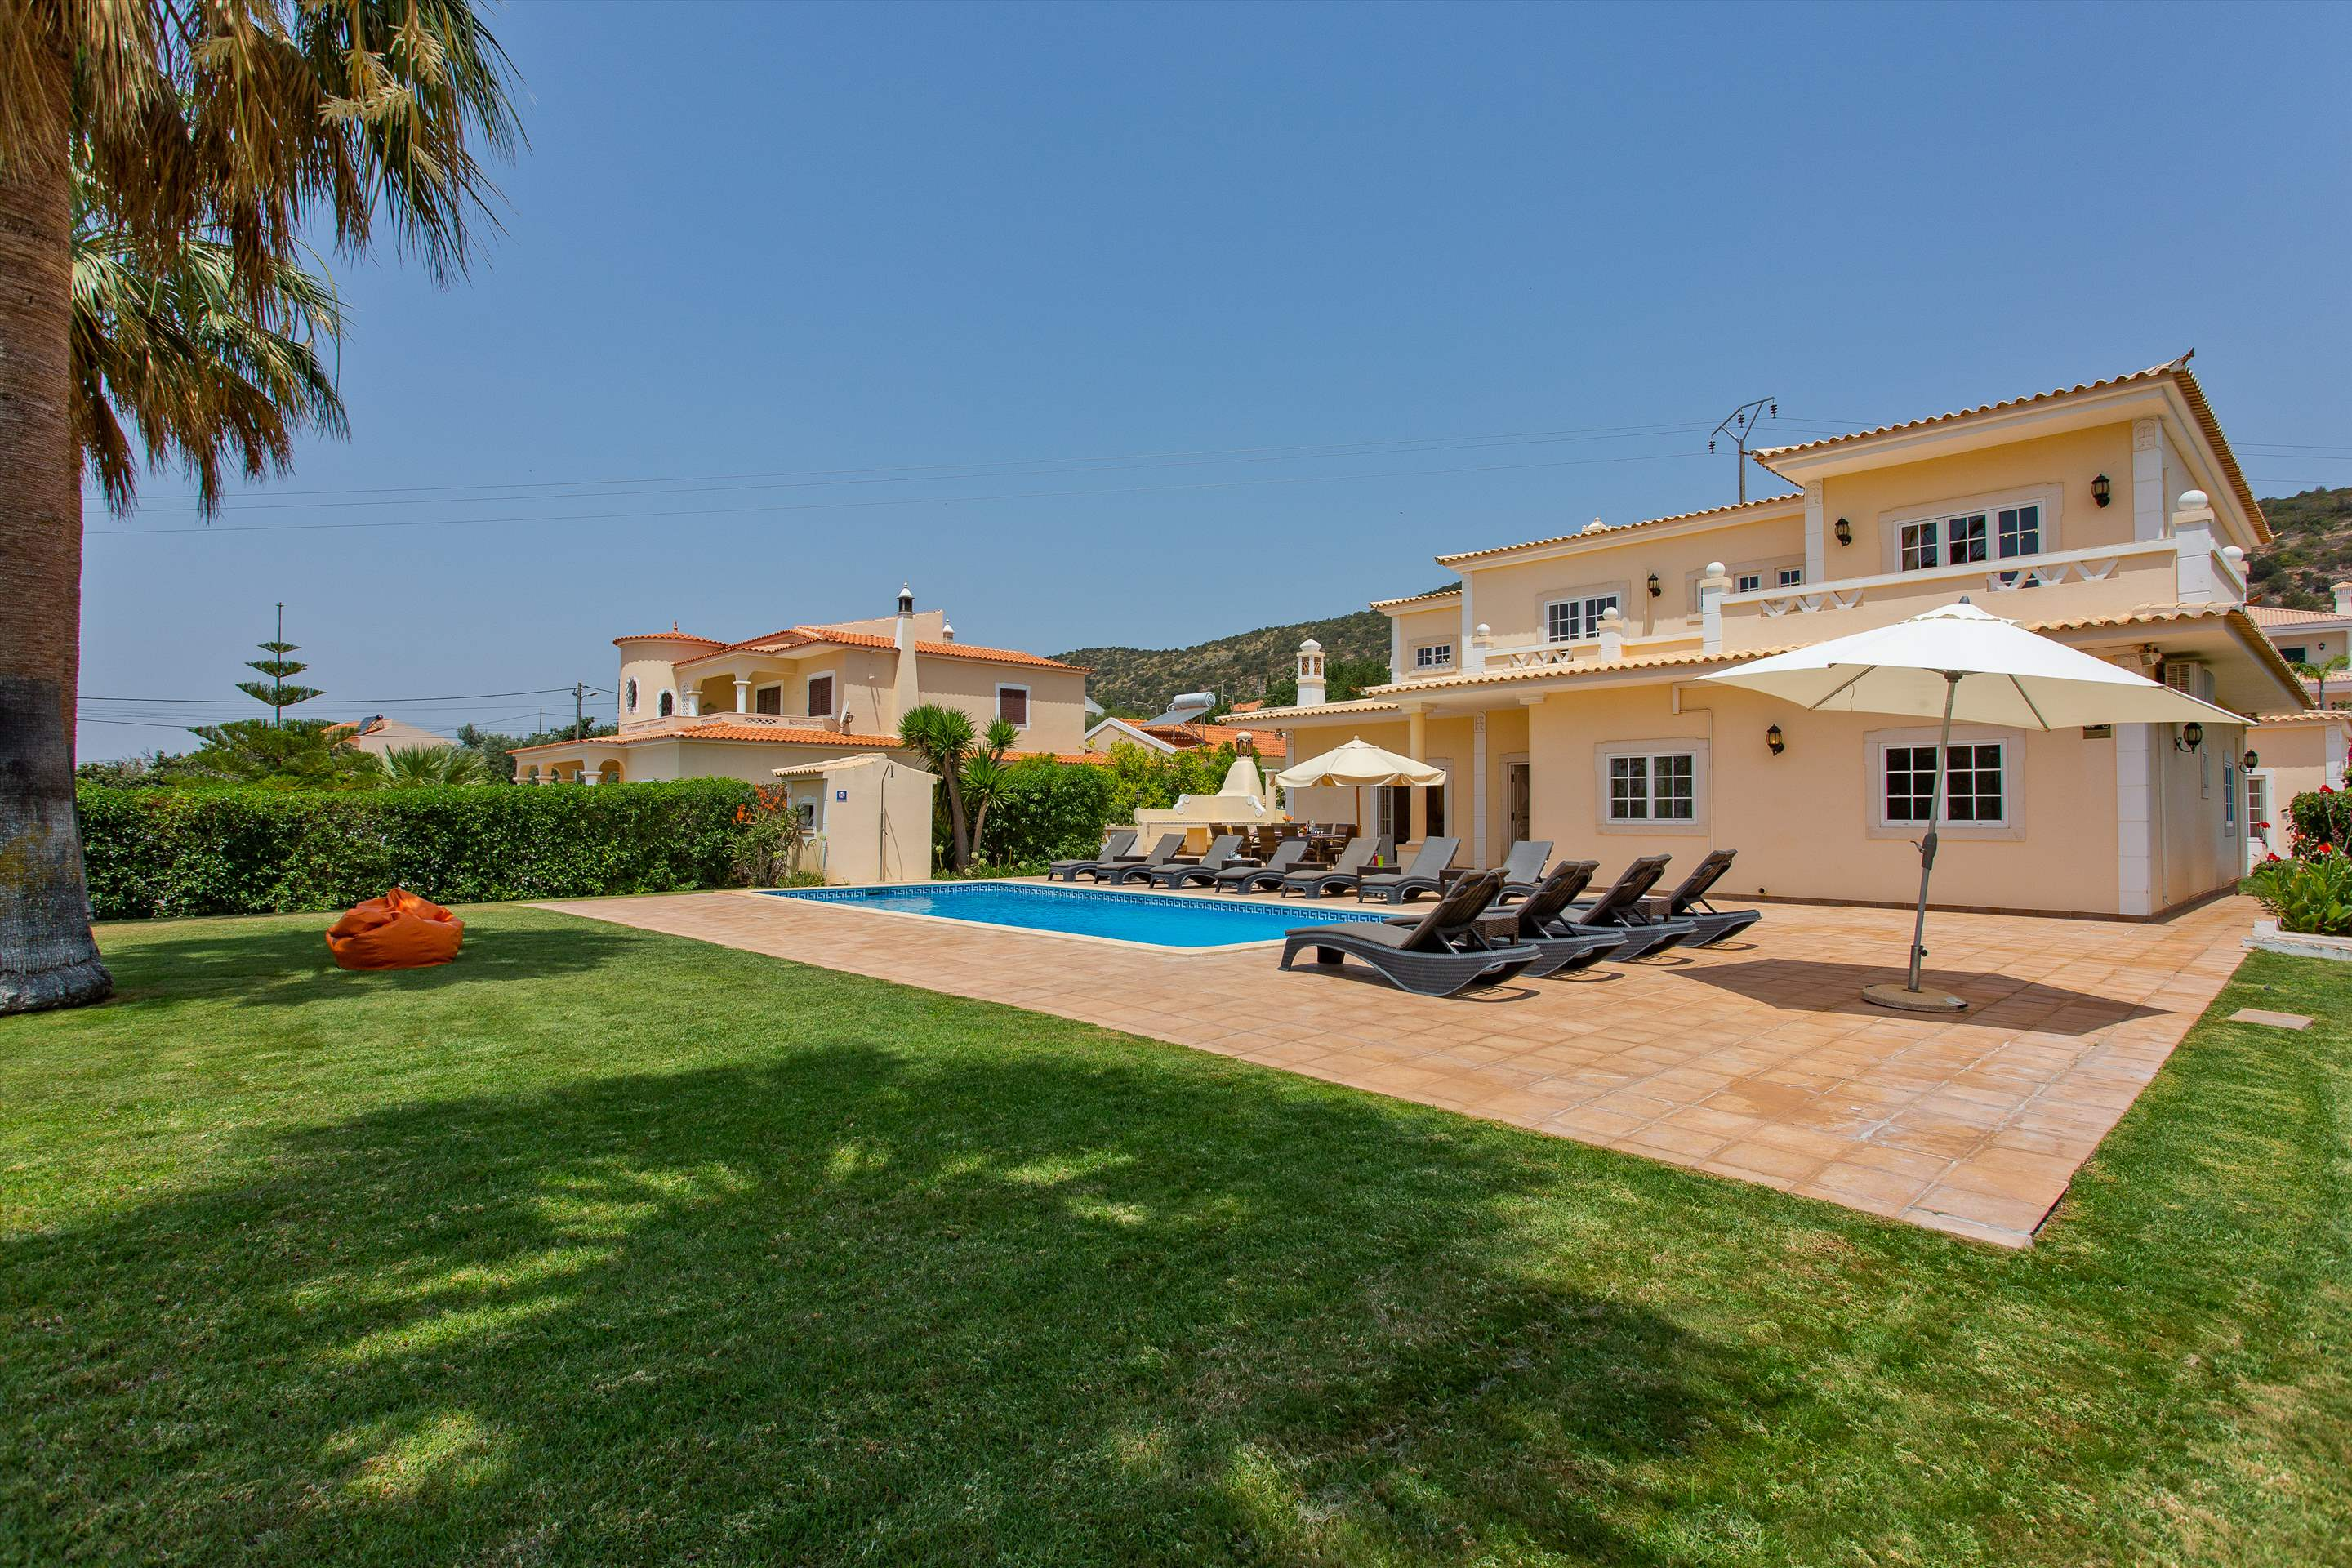 Quinta do Bruno, Eight Bedroom Rate including annexes, 8 bedroom villa in Vilamoura Area, Algarve Photo #18